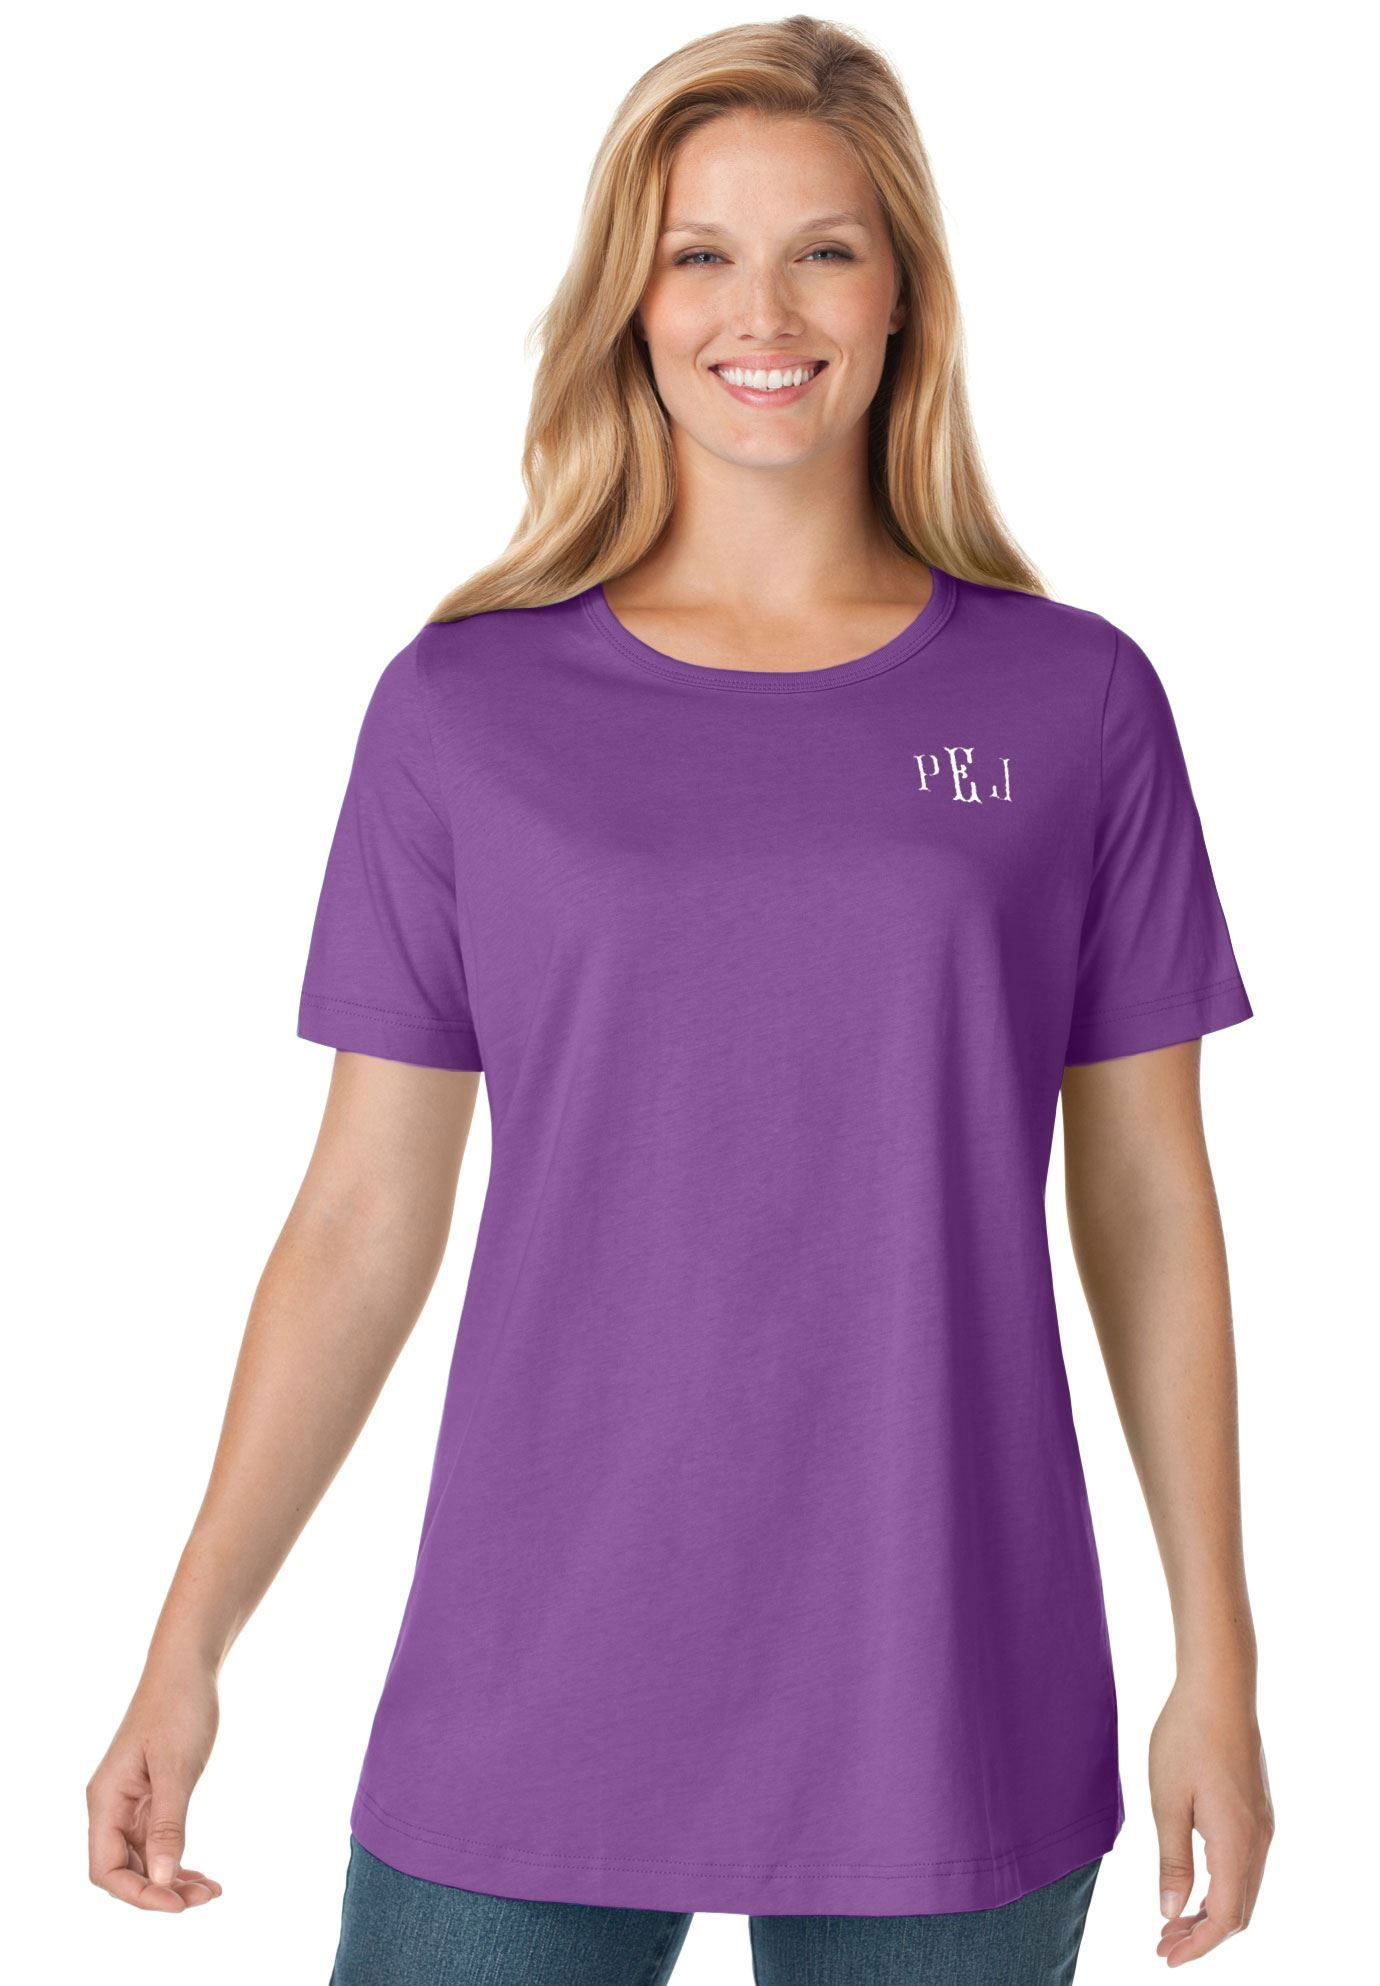 041310a541c9c Perfect crewneck tee in soft cotton knit with monogram - Women s Plus Size  Clothing